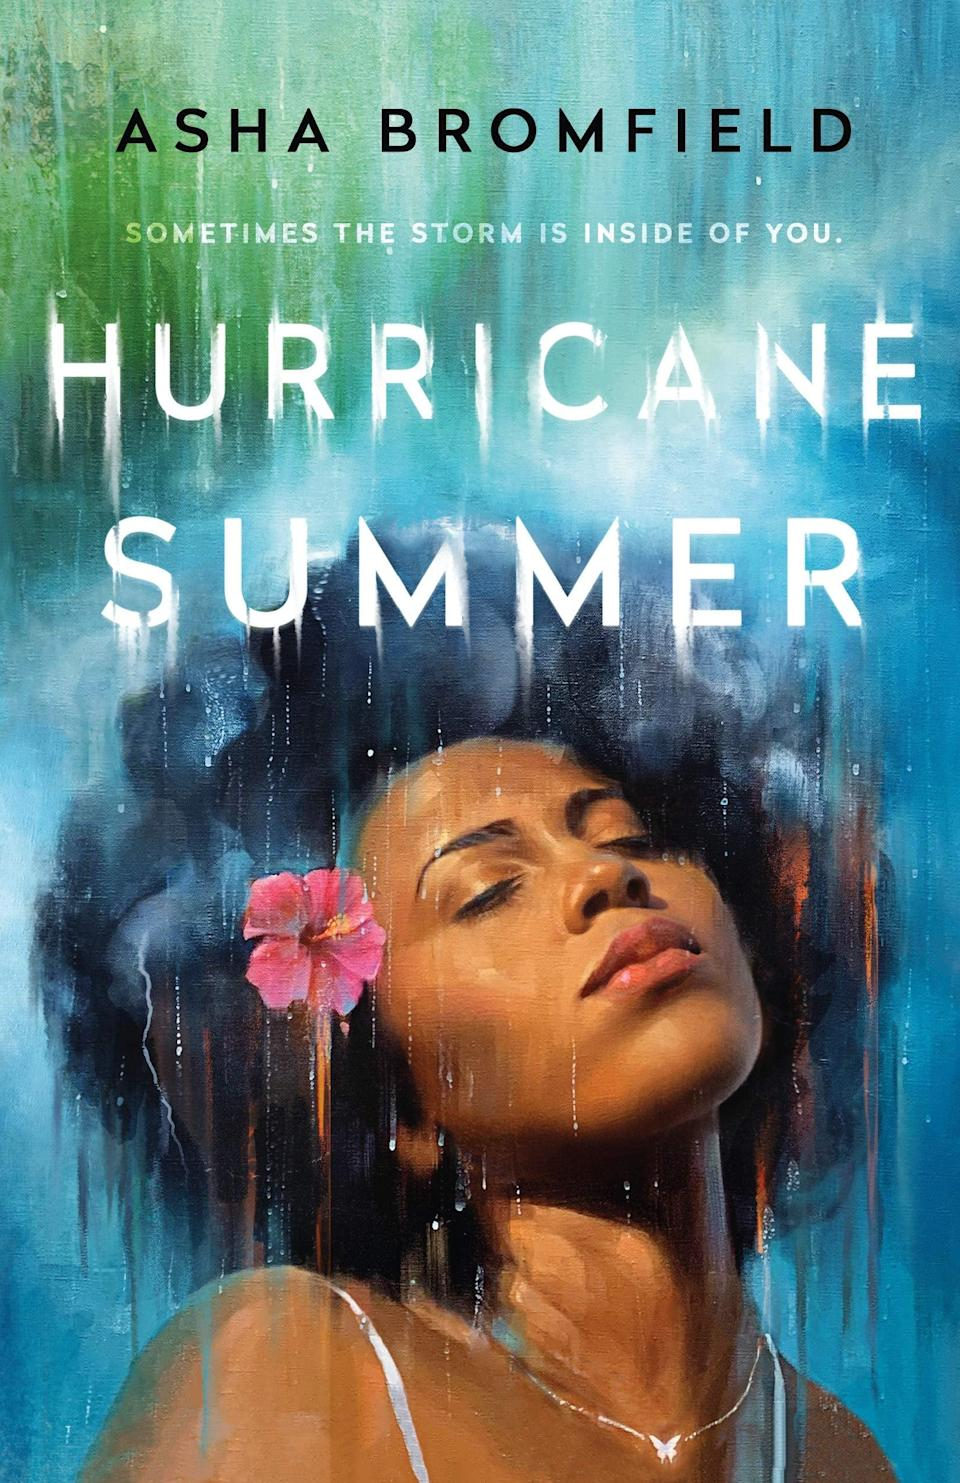 """<p><a href=""""https://www.popsugar.com/Riverdale"""" class=""""link rapid-noclick-resp"""" rel=""""nofollow noopener"""" target=""""_blank"""" data-ylk=""""slk:Riverdale""""><strong>Riverdale</strong></a> actor Asha Bromfield's first novel is already receiving rave reviews - and for good reason. <span><strong>Hurricane Summer</strong></span> is a moving and insightful portrait of modern issues surrounding race and classism, as well as an emotional story about a fractured father-daughter relationship. For years, Tilla has wondered what her father's life in Jamaica is like, and now she'll have the entire summer to find out. What she doesn't expect is to find herself caught in a hurricane that will change her life and her relationship with her dad forever. </p> <p><em>Out May 4</em></p>"""